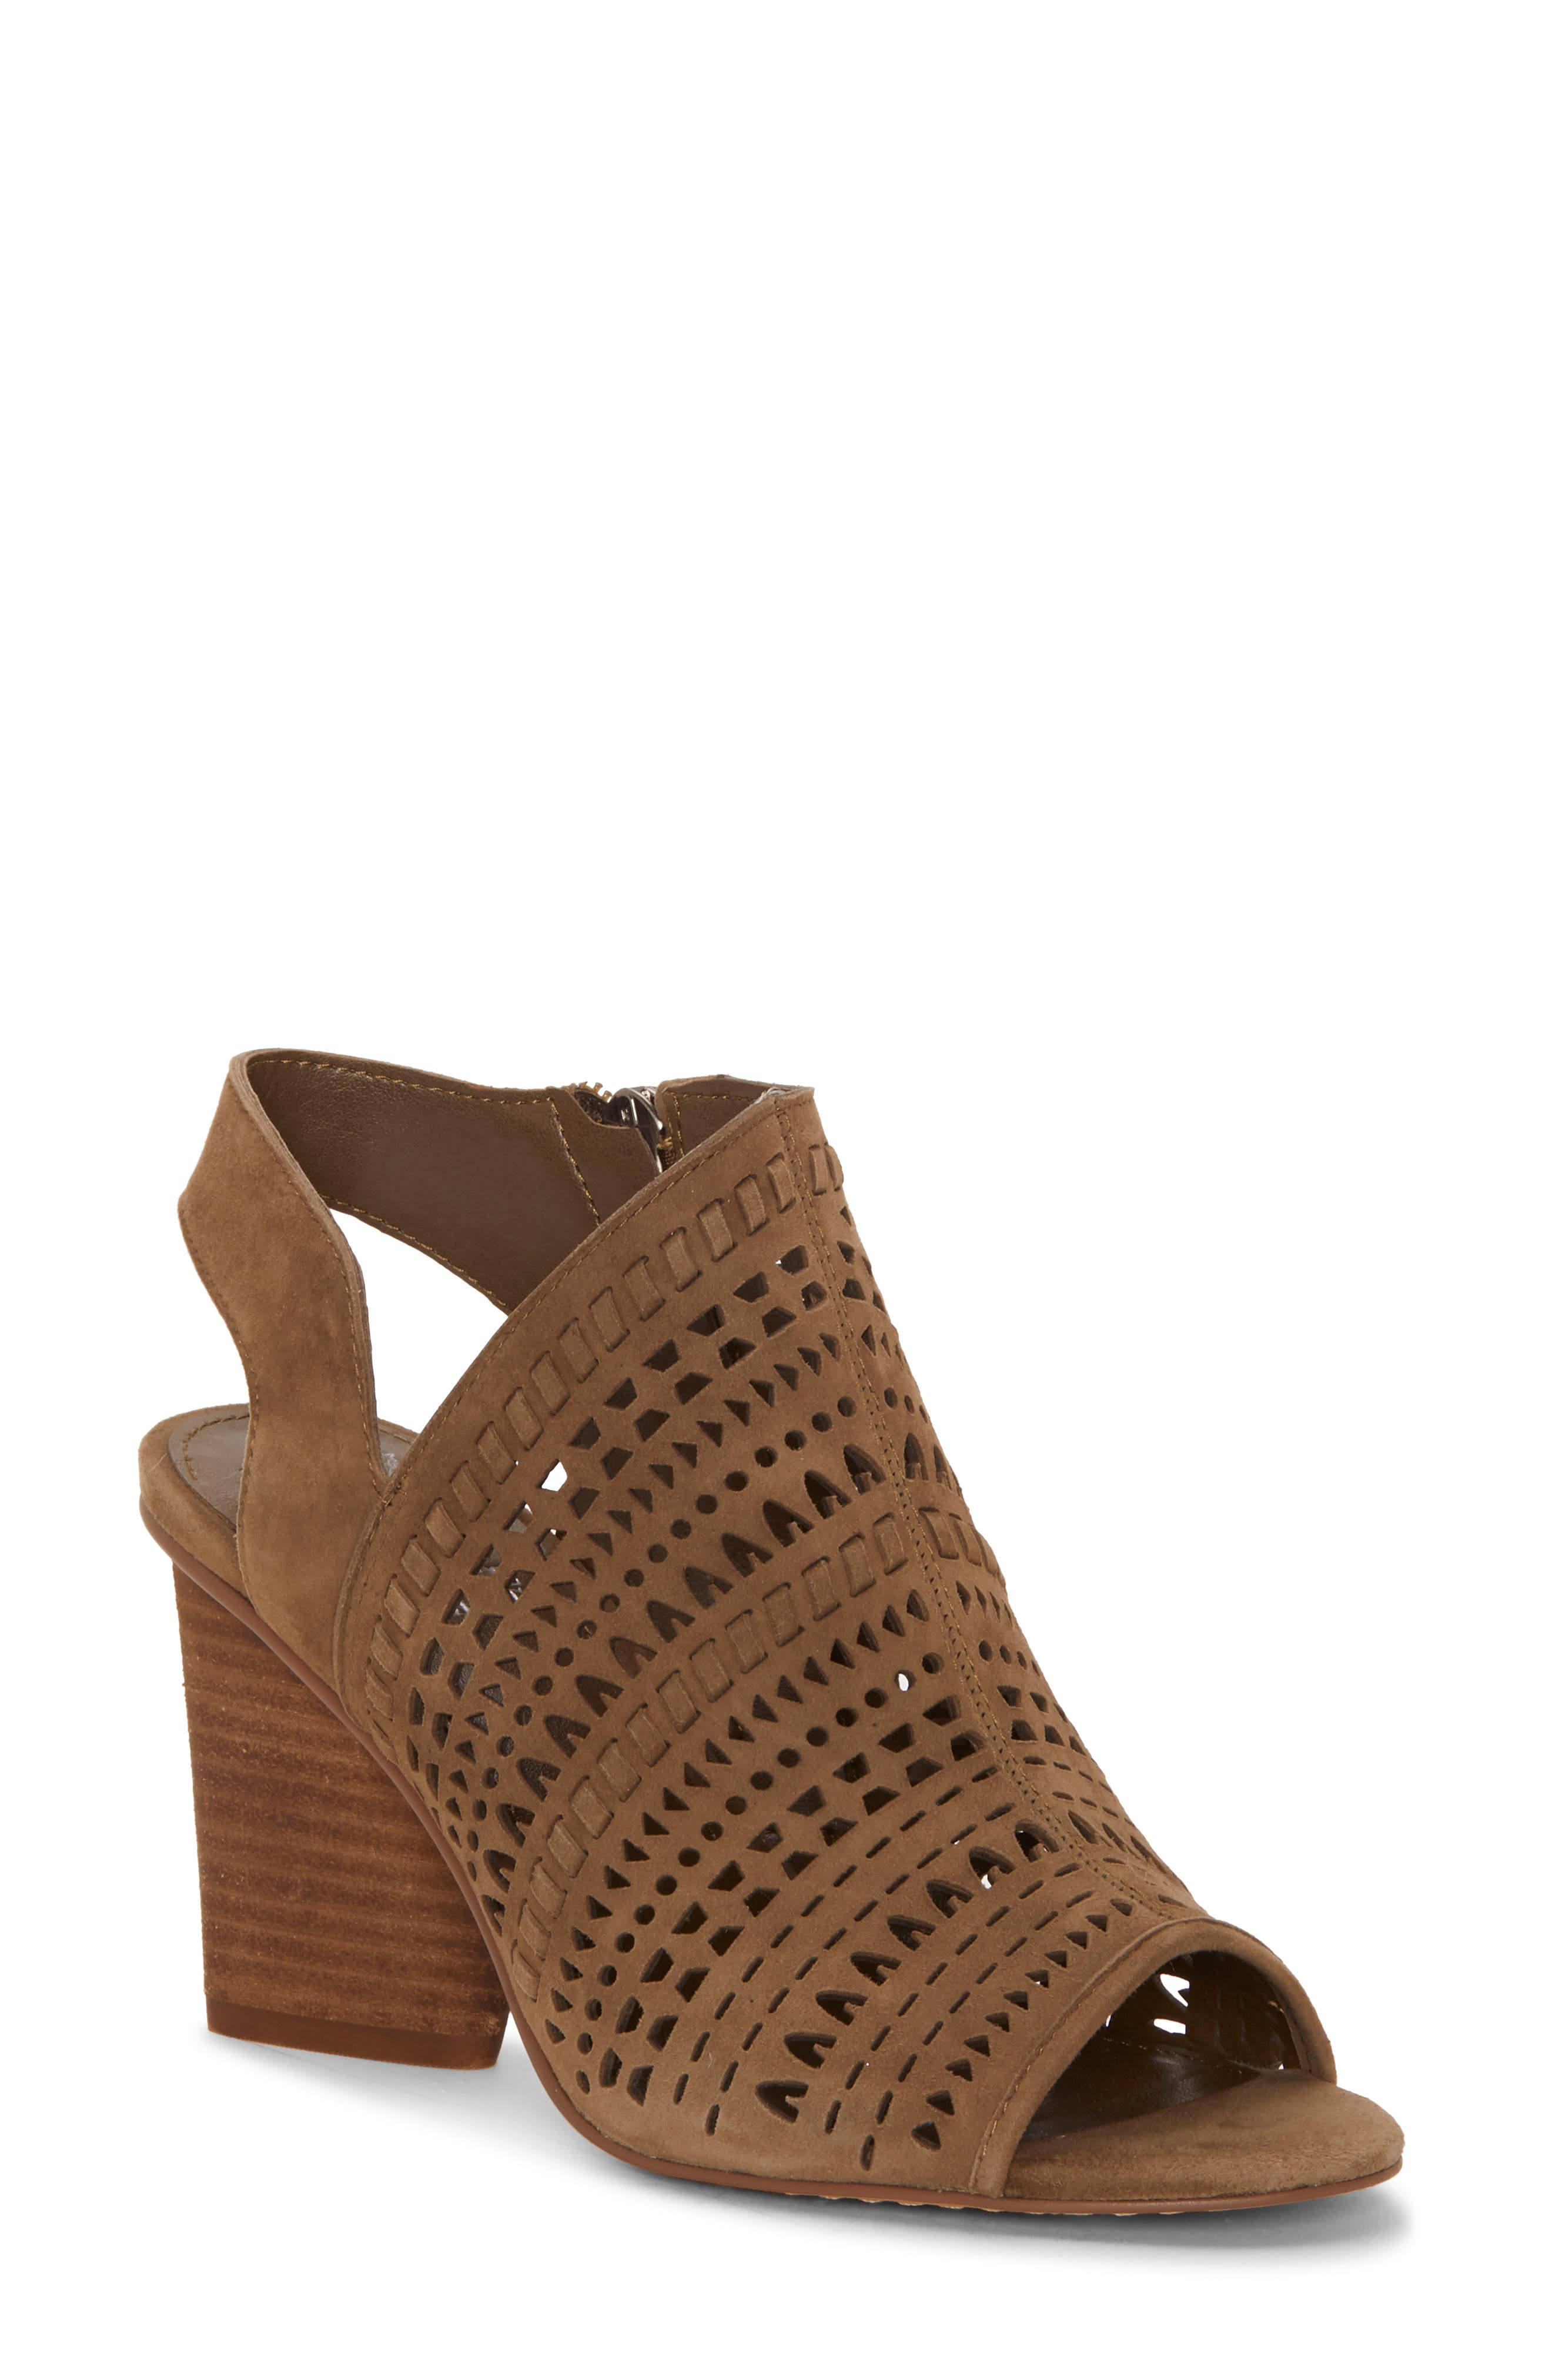 Vince Camuto Derechie Perforated Shield Sandal- Green